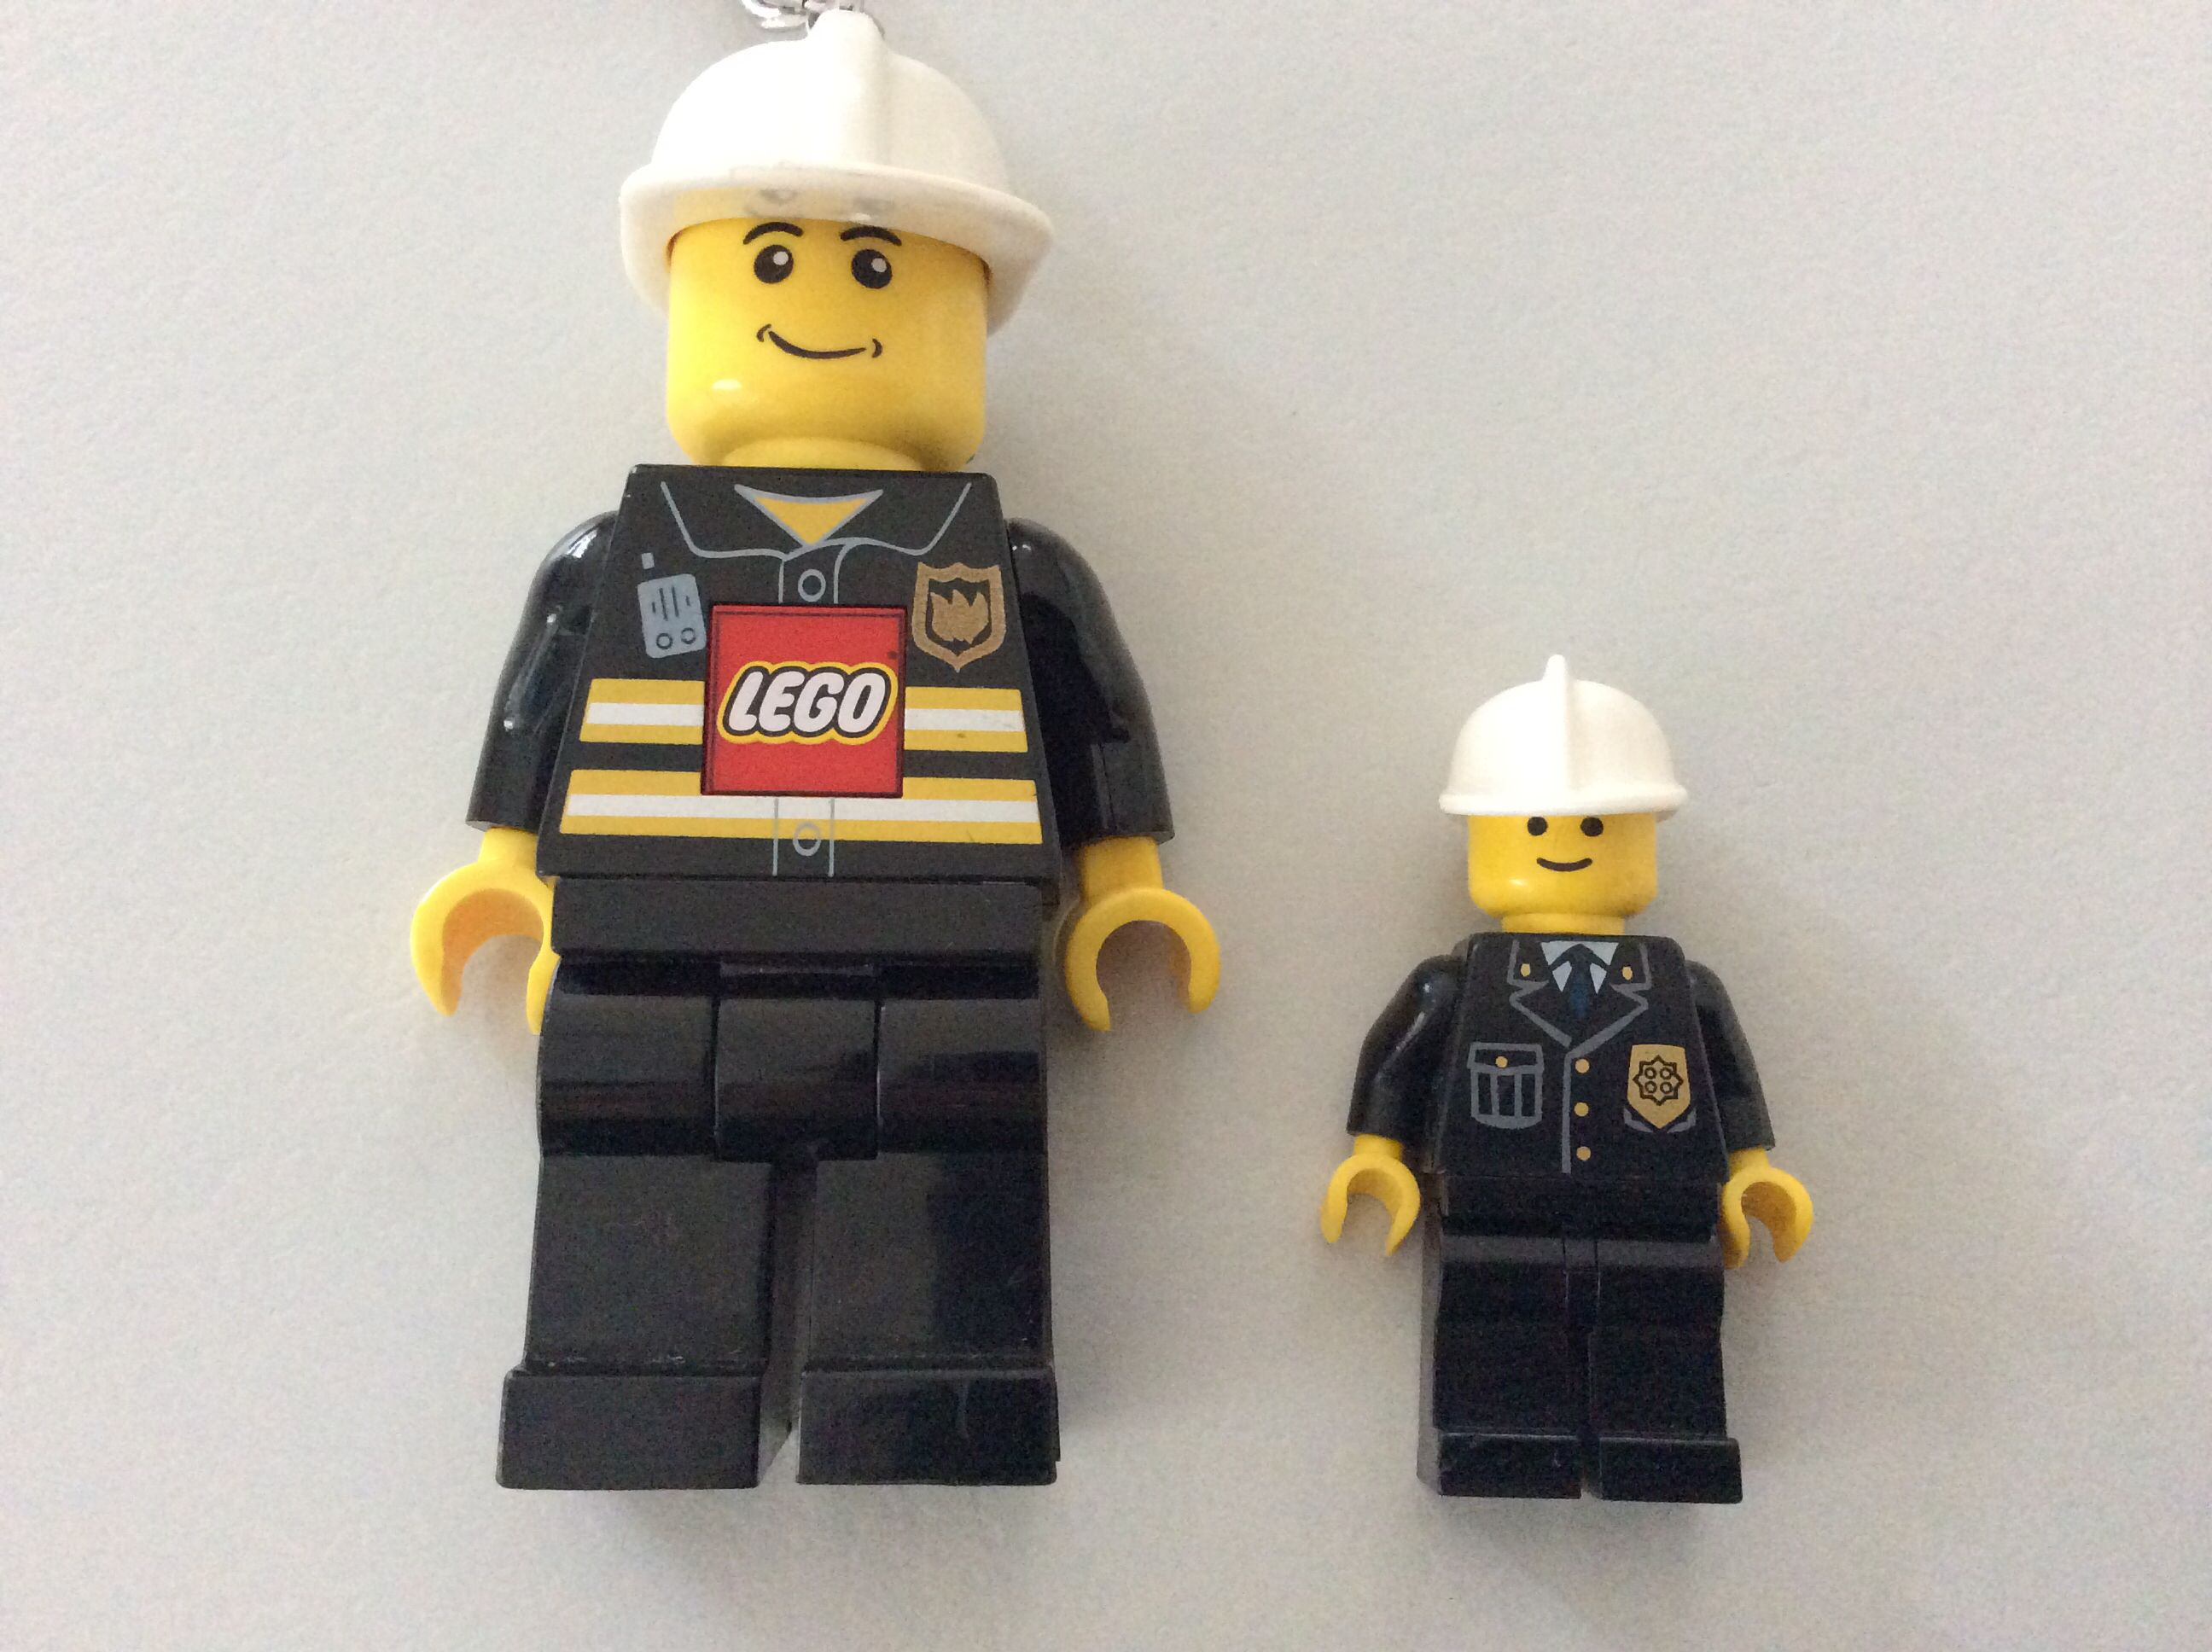 Are these Lego men similar figures? Are any parts of the Lego men in ratio? Use ruler on image or projected image to check ratios of matching parts.